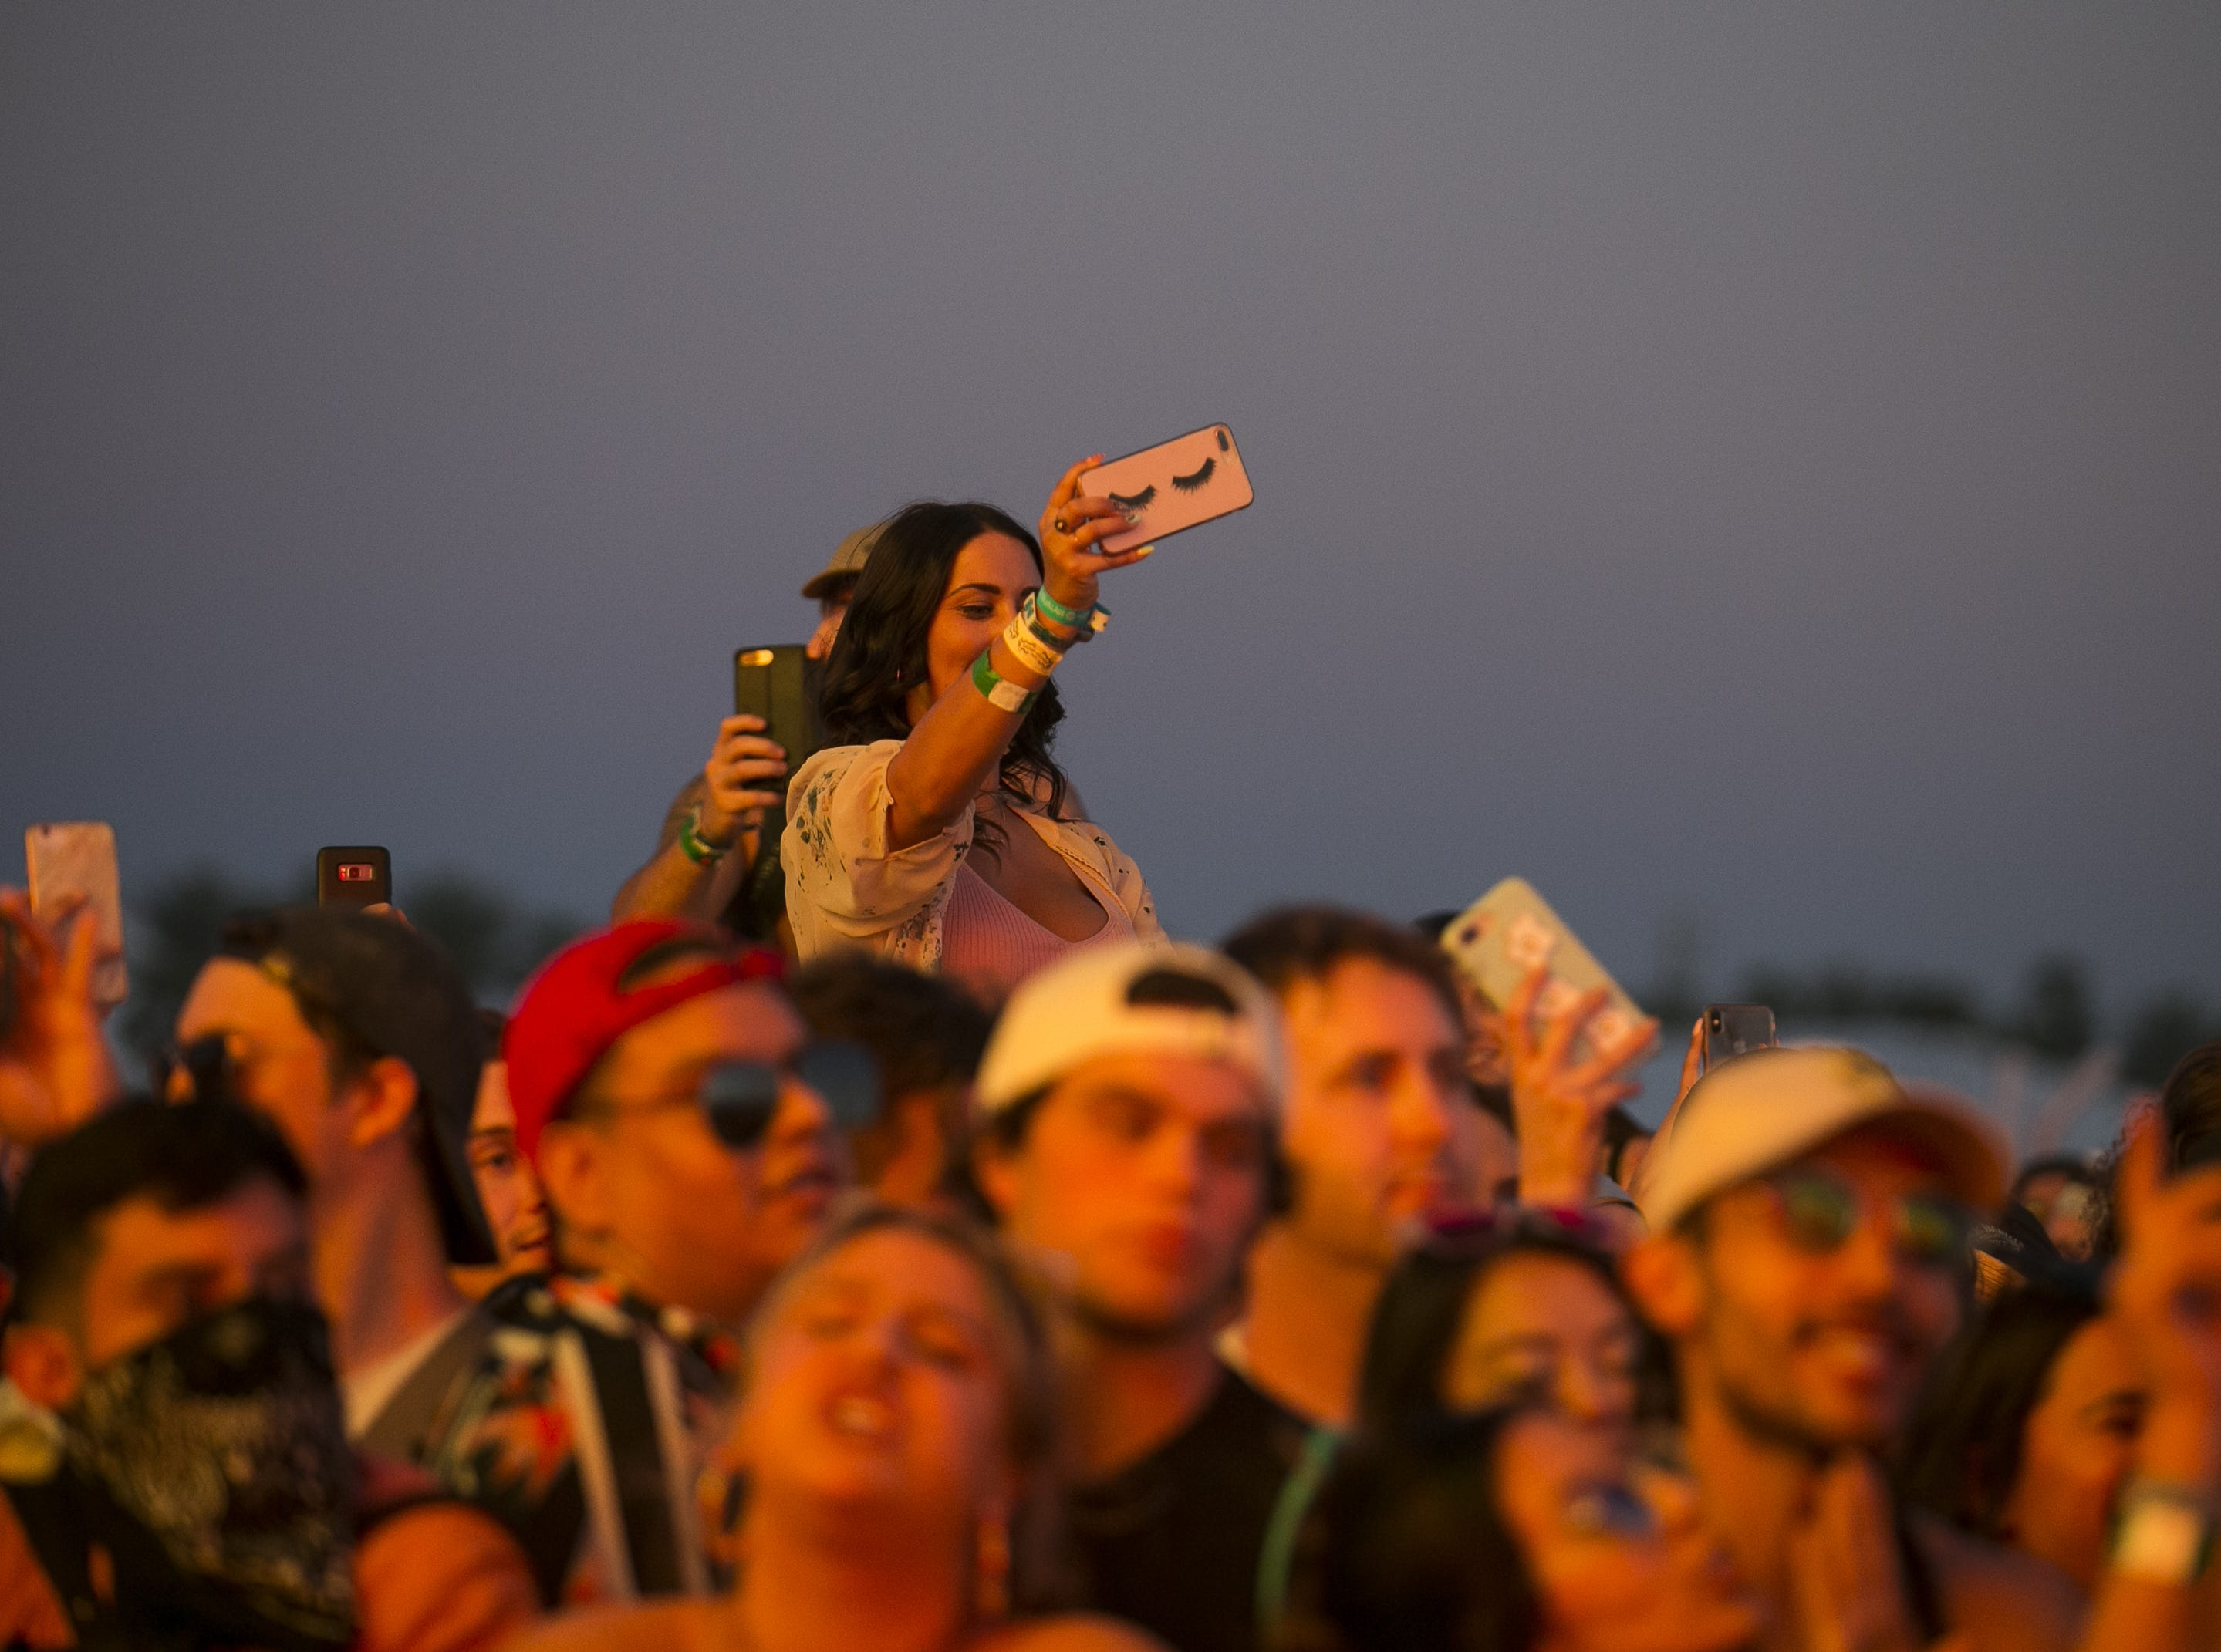 The crowd reacts to Anderson .Paak and The Free Nationals performing on stage at the Coachella Valley Music and Arts Festival in Indio, Calif. on April 12, 2019.